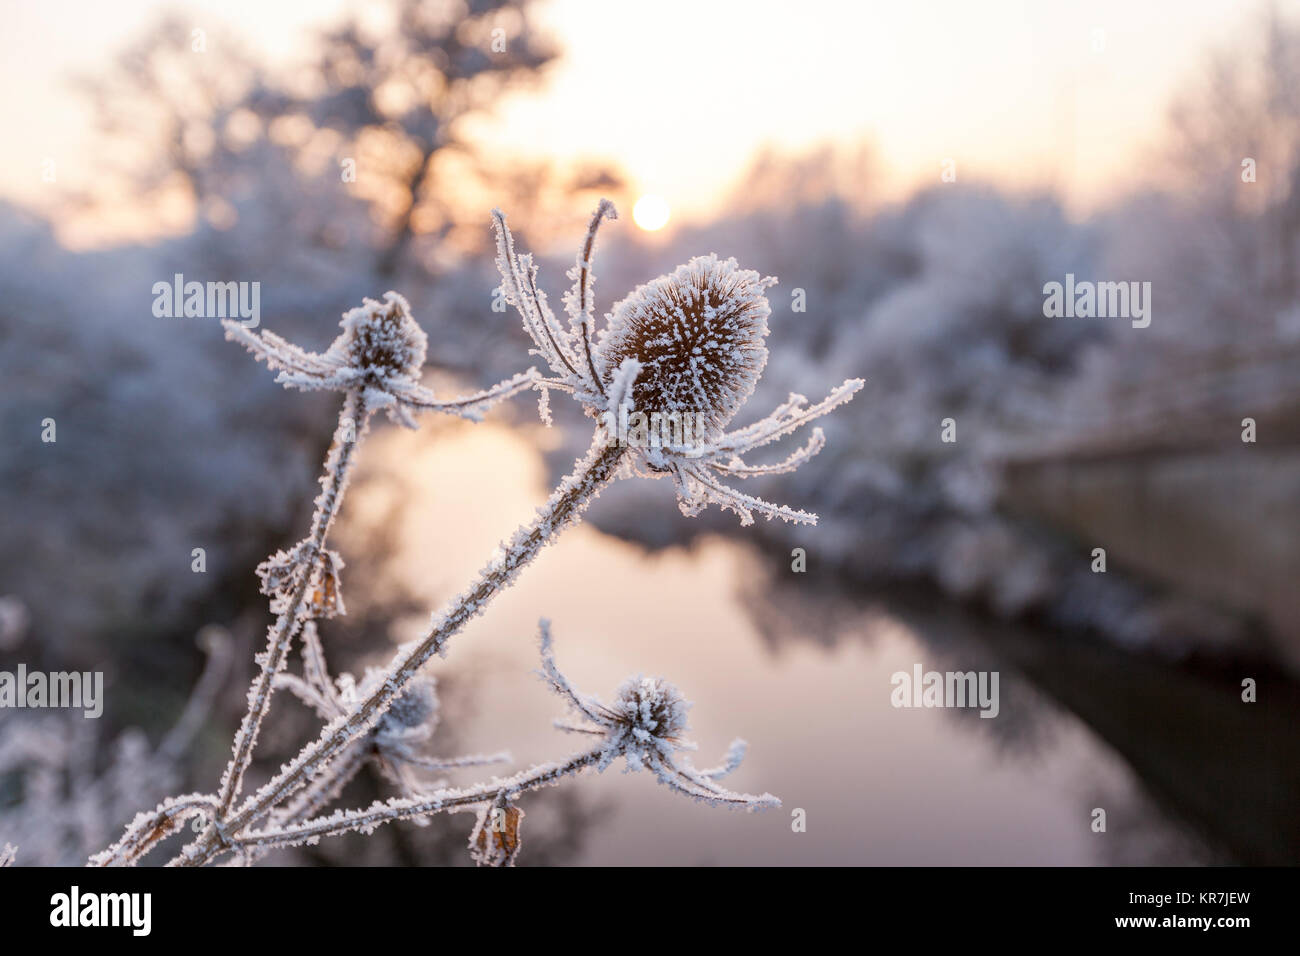 Close up of Frozen Teasel Plants beside a River in England, UK - Stock Image